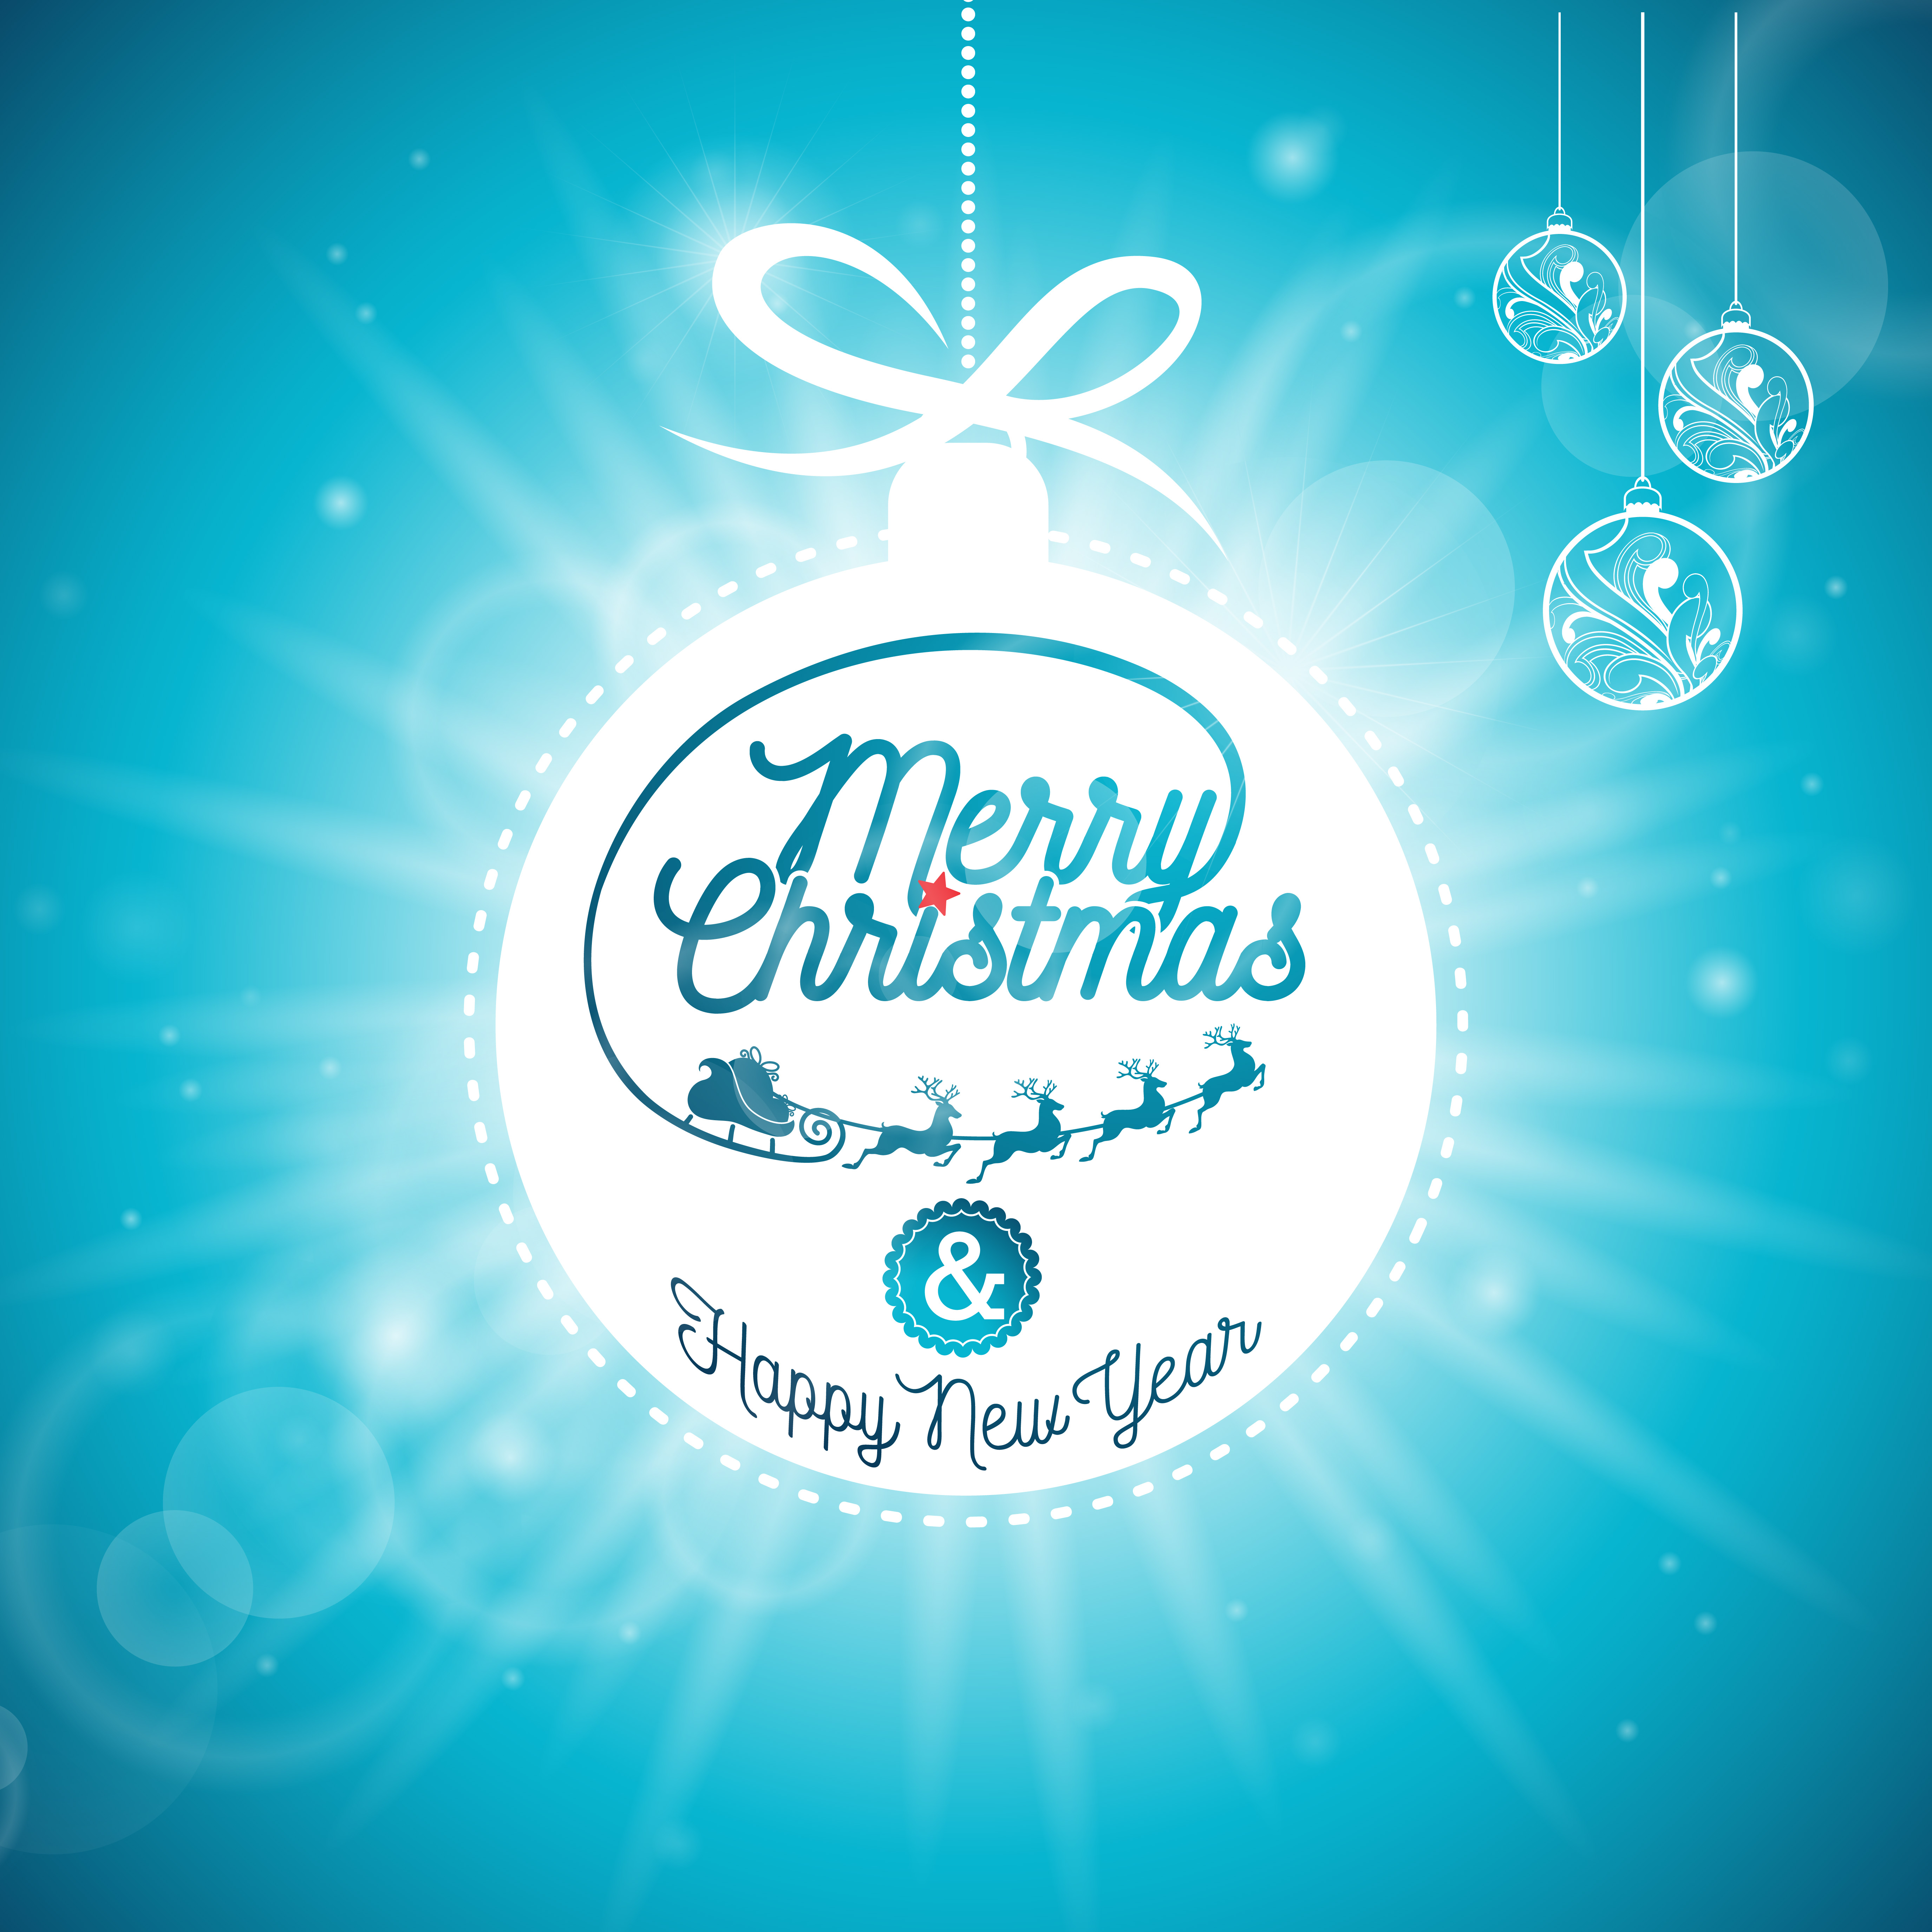 047e1b8589fad Vector Merry Christmas Holidays and Happy New Year illustration with  typographic design